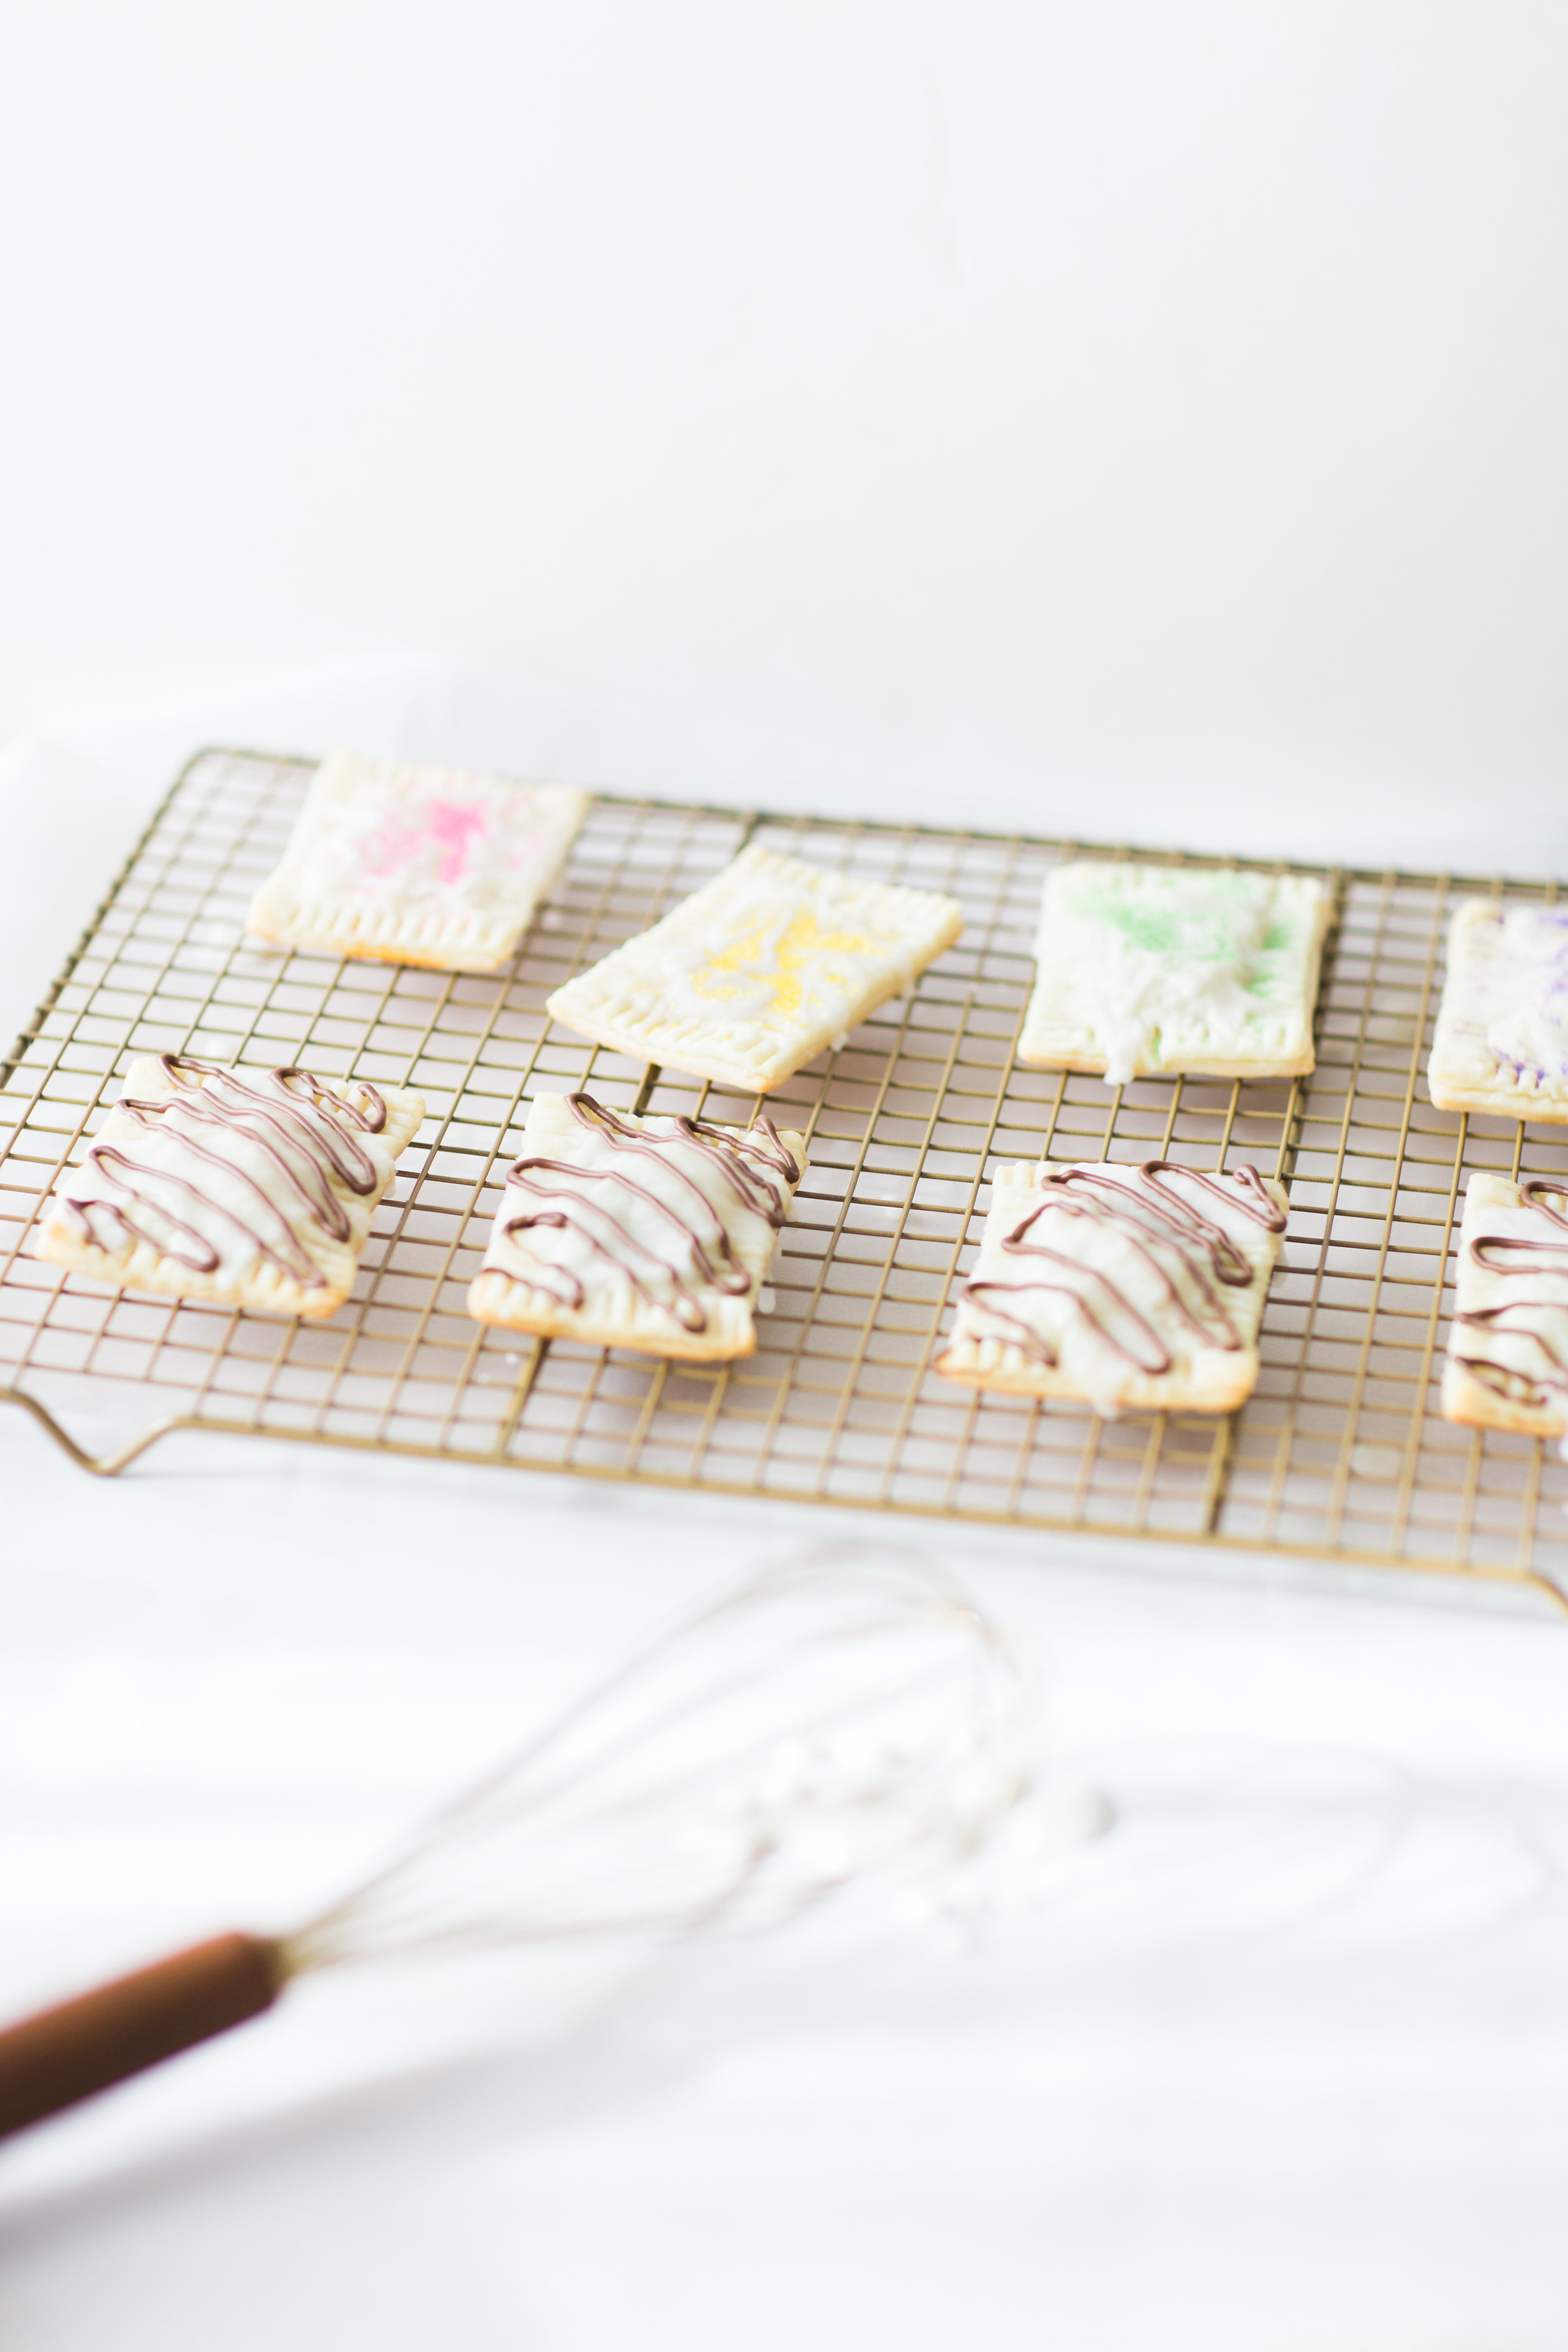 How to Make 3-Ingredient Homemade Pop-Tarts; including a vegan version! Kids LOVE making these. Click through for the simple recipe. | glitterinc.com | @glitterinc